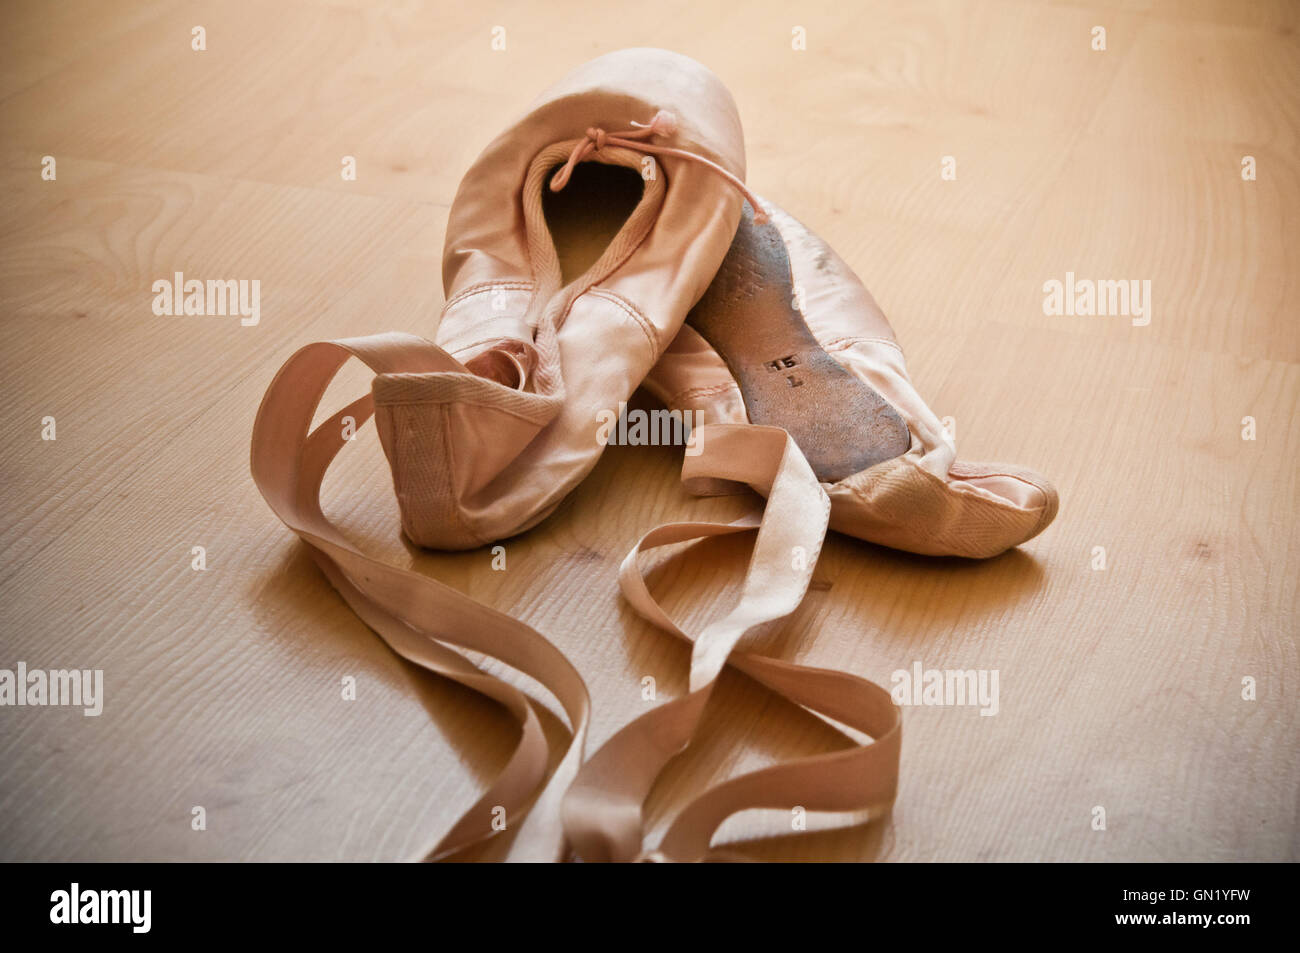 worn out ballet shoes - Stock Image